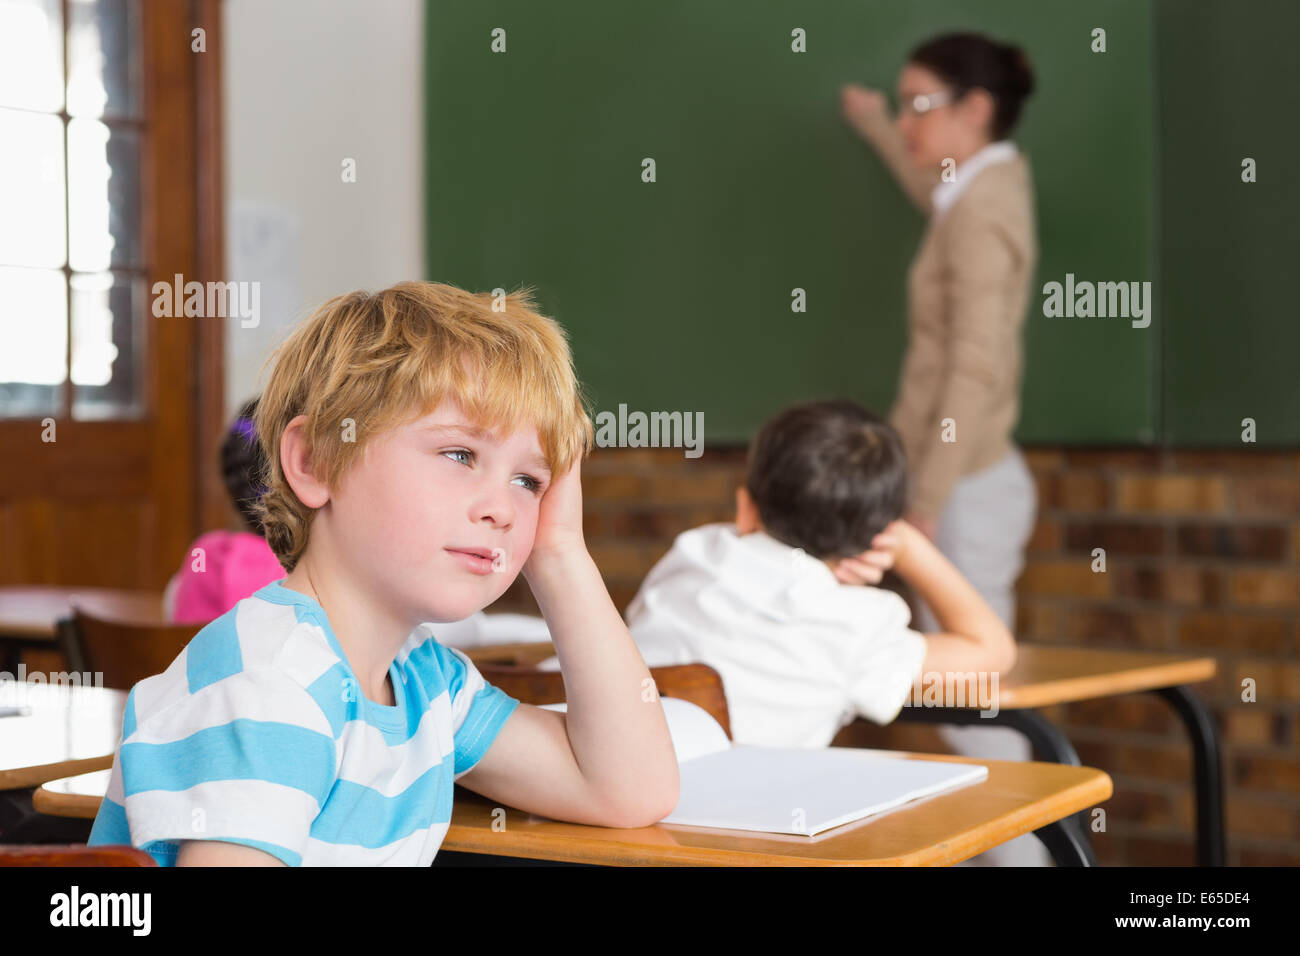 Cute pupil not paying attention in classroom - Stock Image